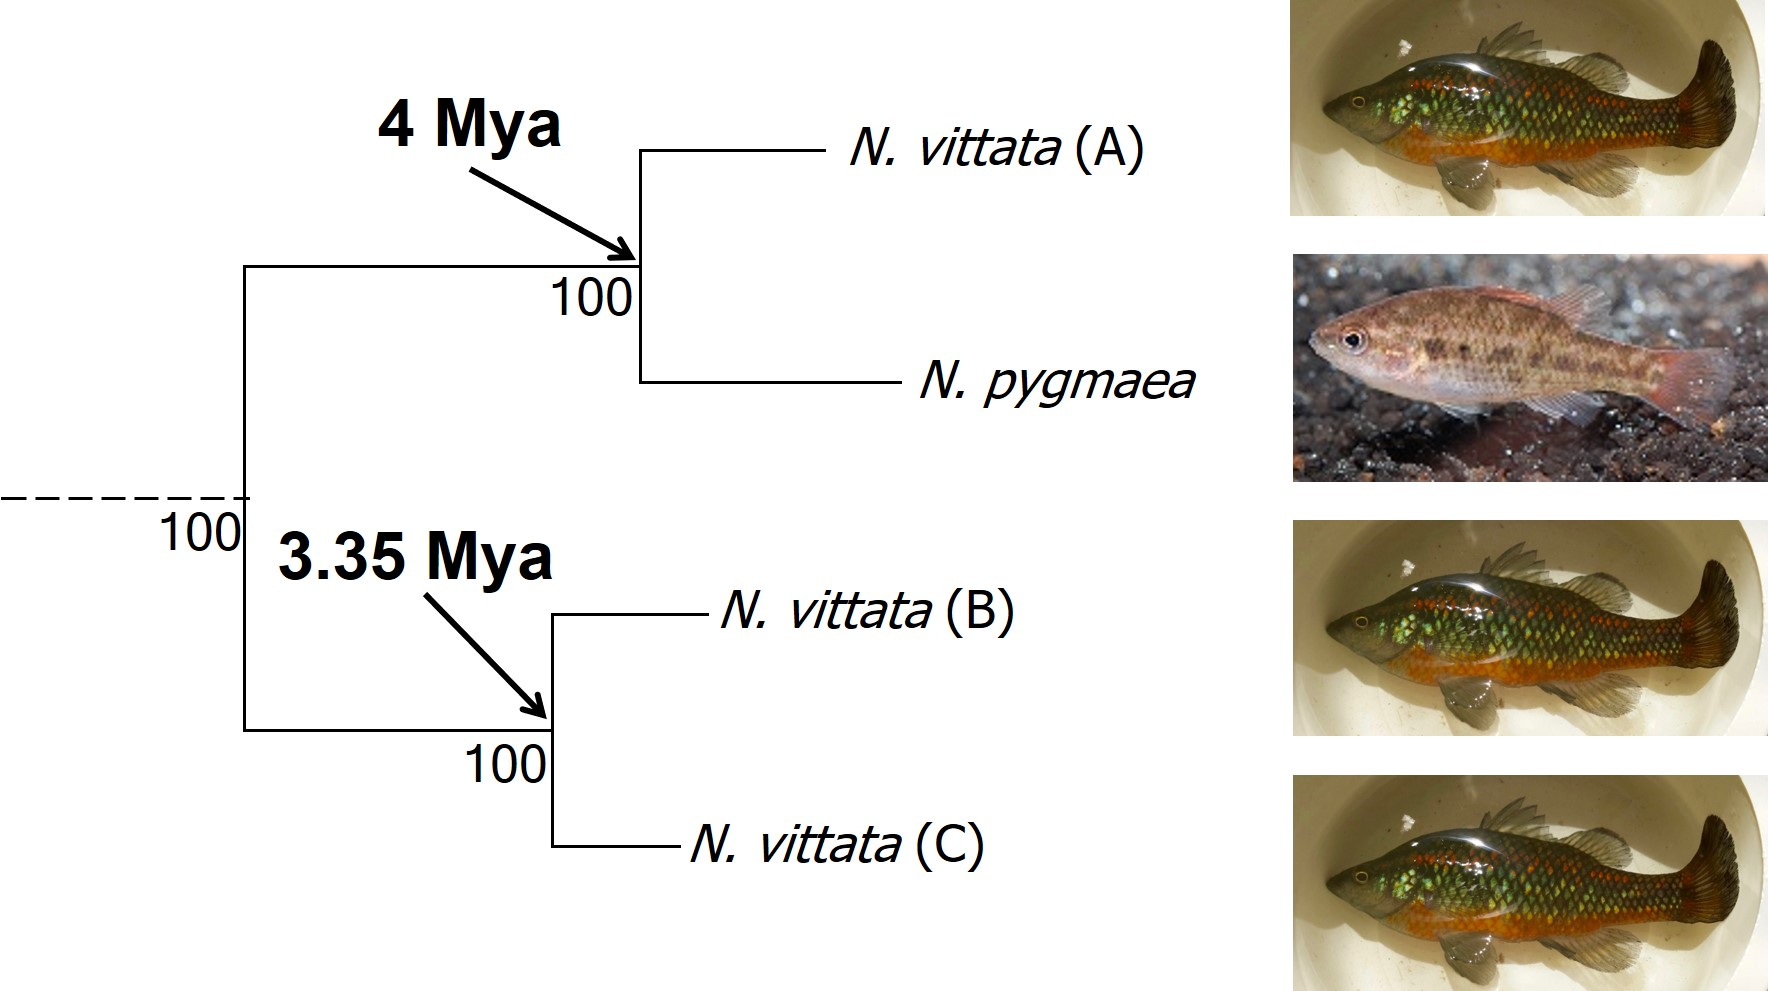 Vittata cryptic species